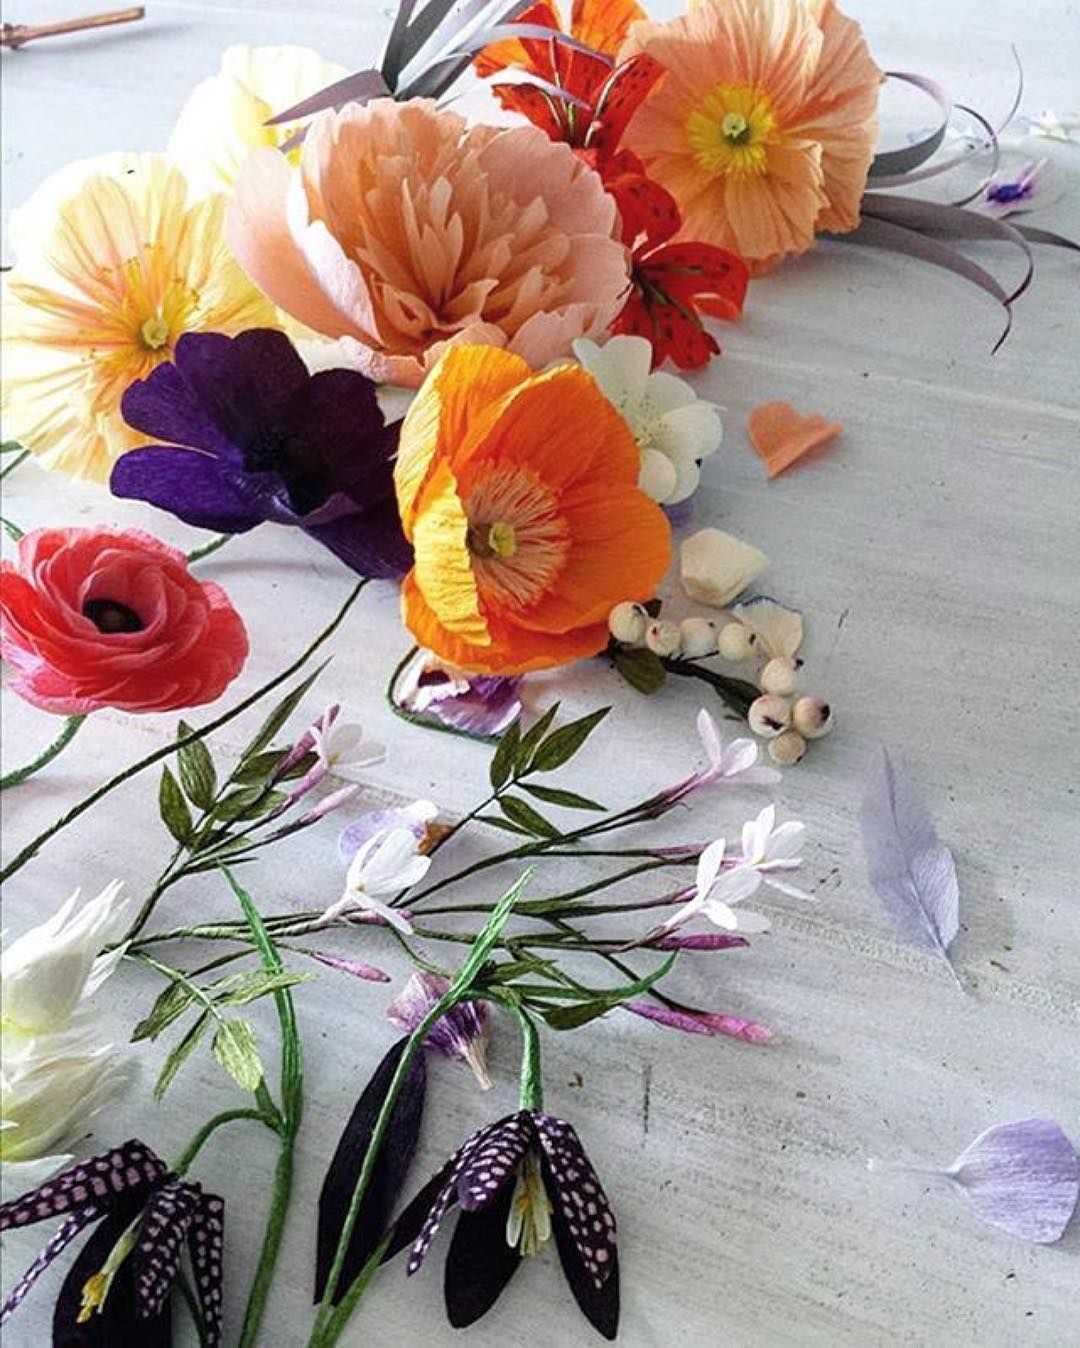 Paper flowers play images flower decoration ideas repost from jackievarriano of my paper flowers styled by the team cut paper paper flowers play mightylinksfo